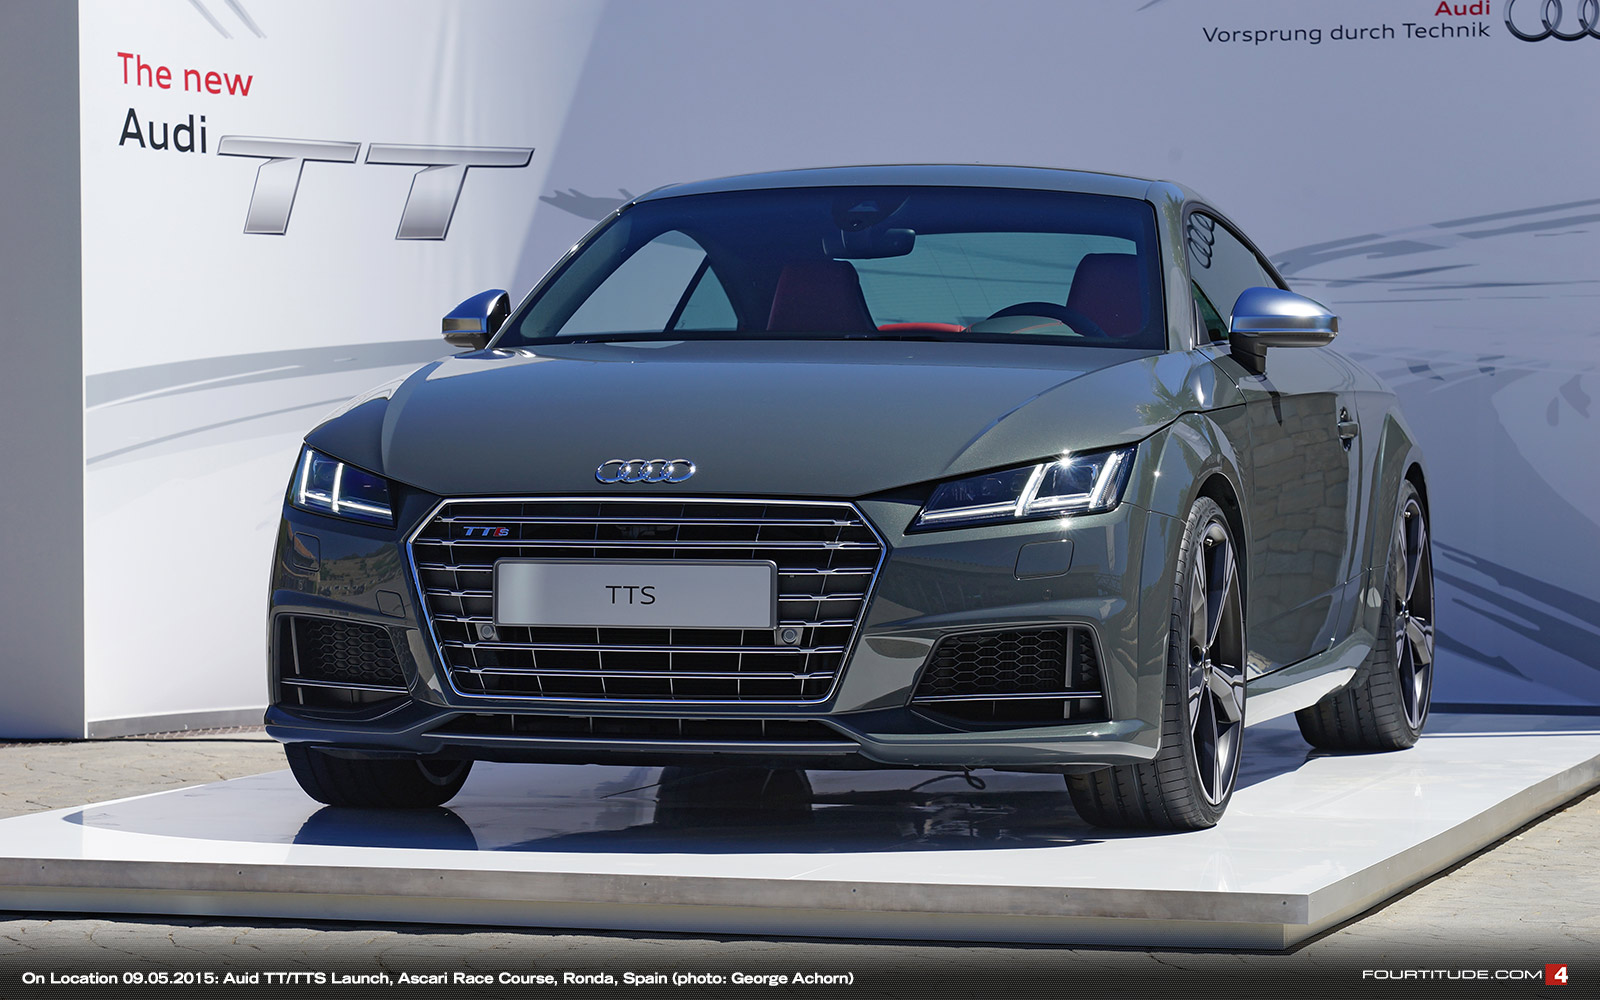 On-Location-05-09-2014-Audi-TTS-Launch-Ascari-Nano-Grey-584